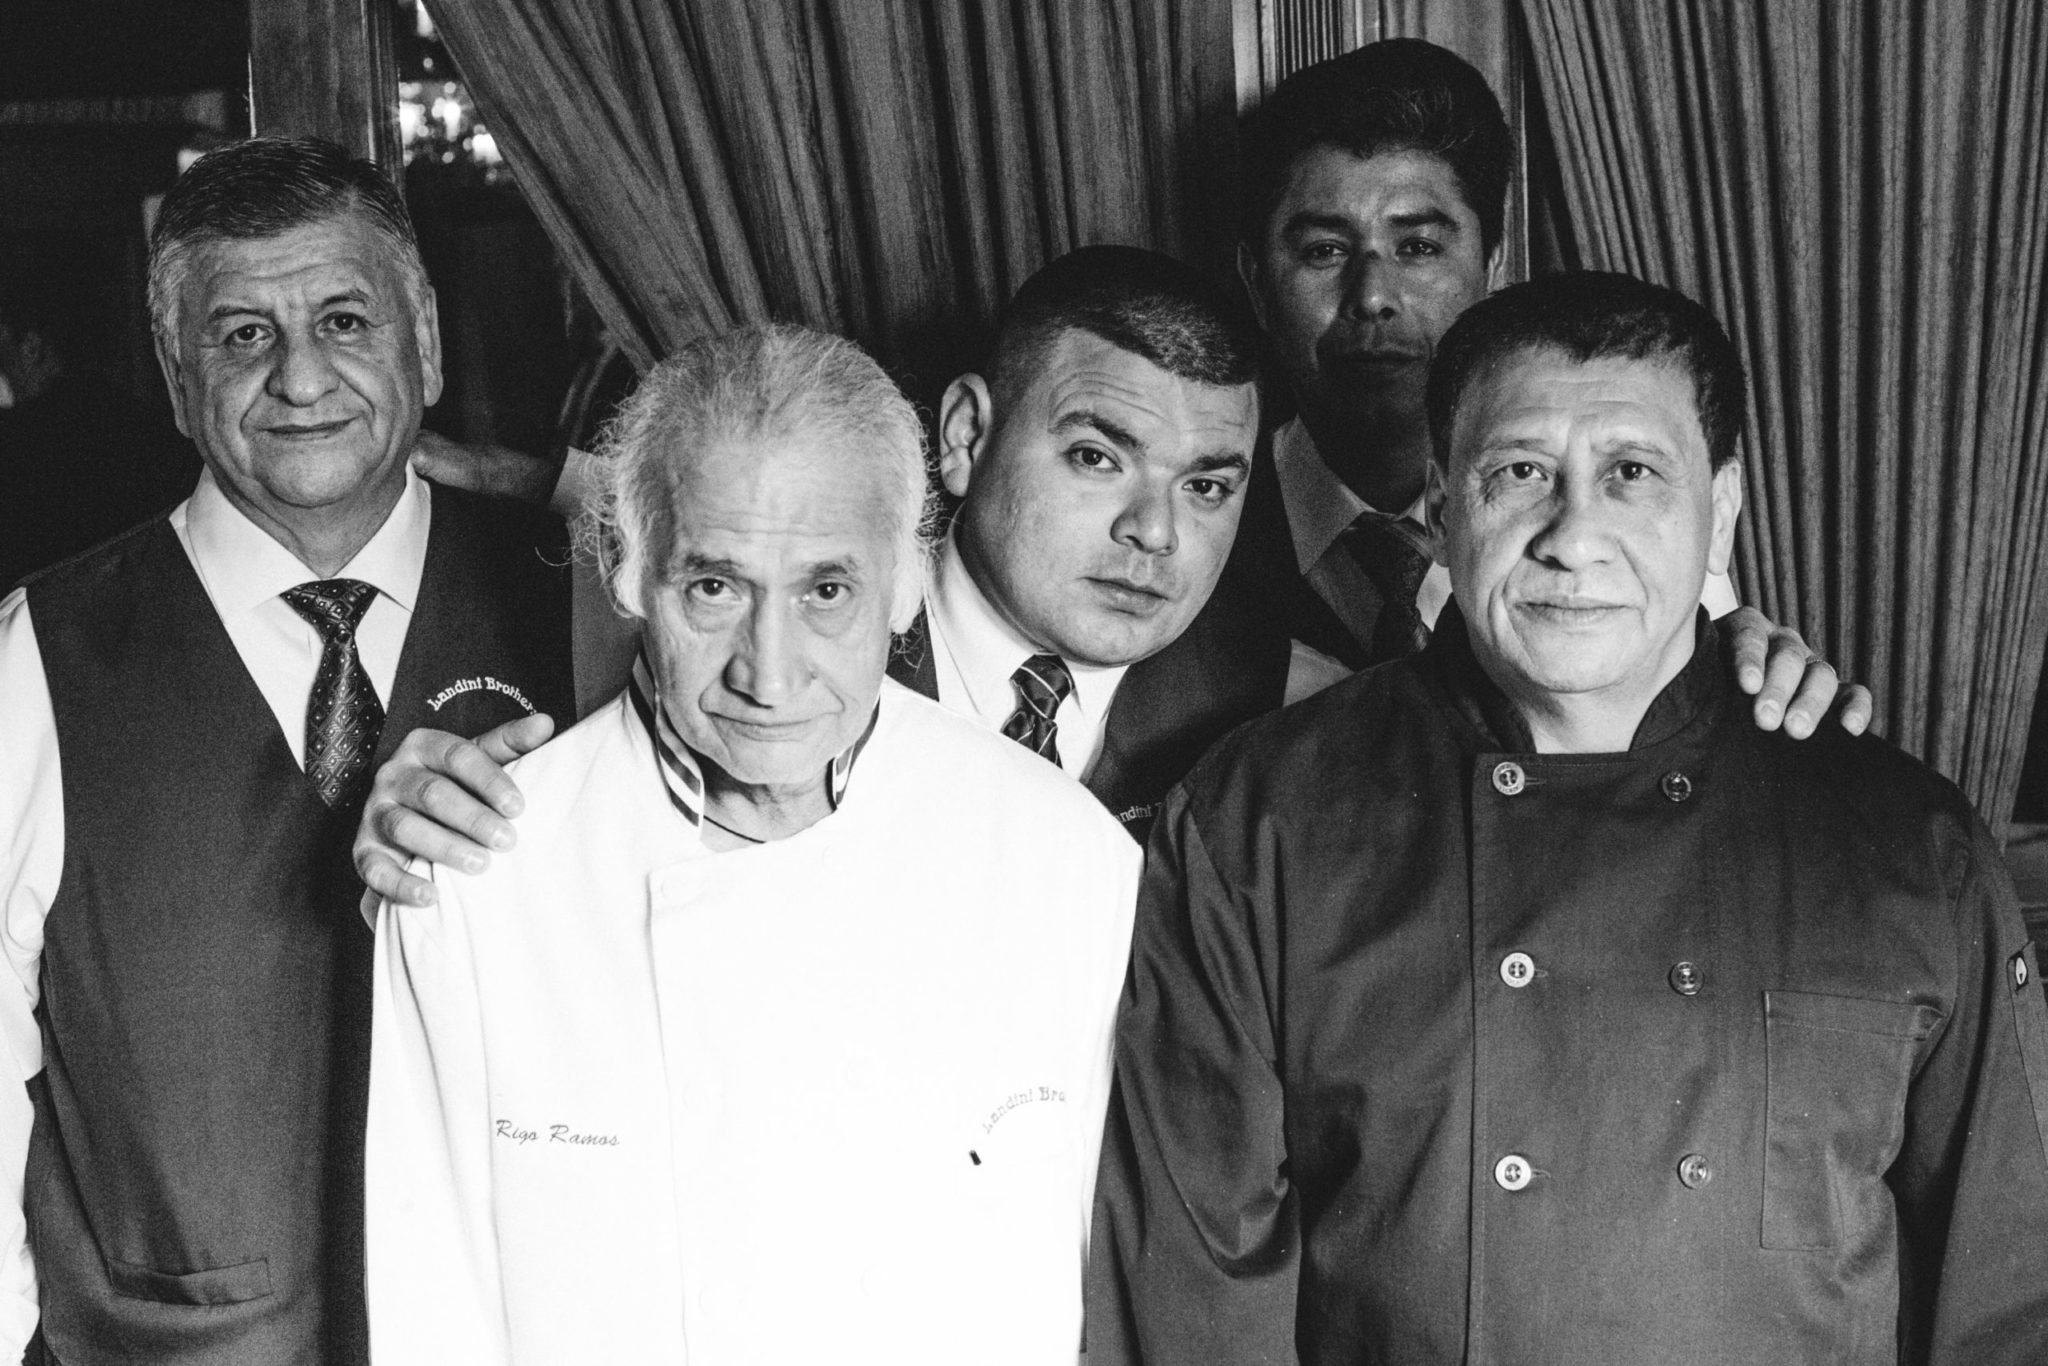 Chef Rigoberto Ramos, pictured with Landini Brothers staff, is celebrating 40 years with the 40 year old restaurant. Photo by Maya Oren/MOJALVO.